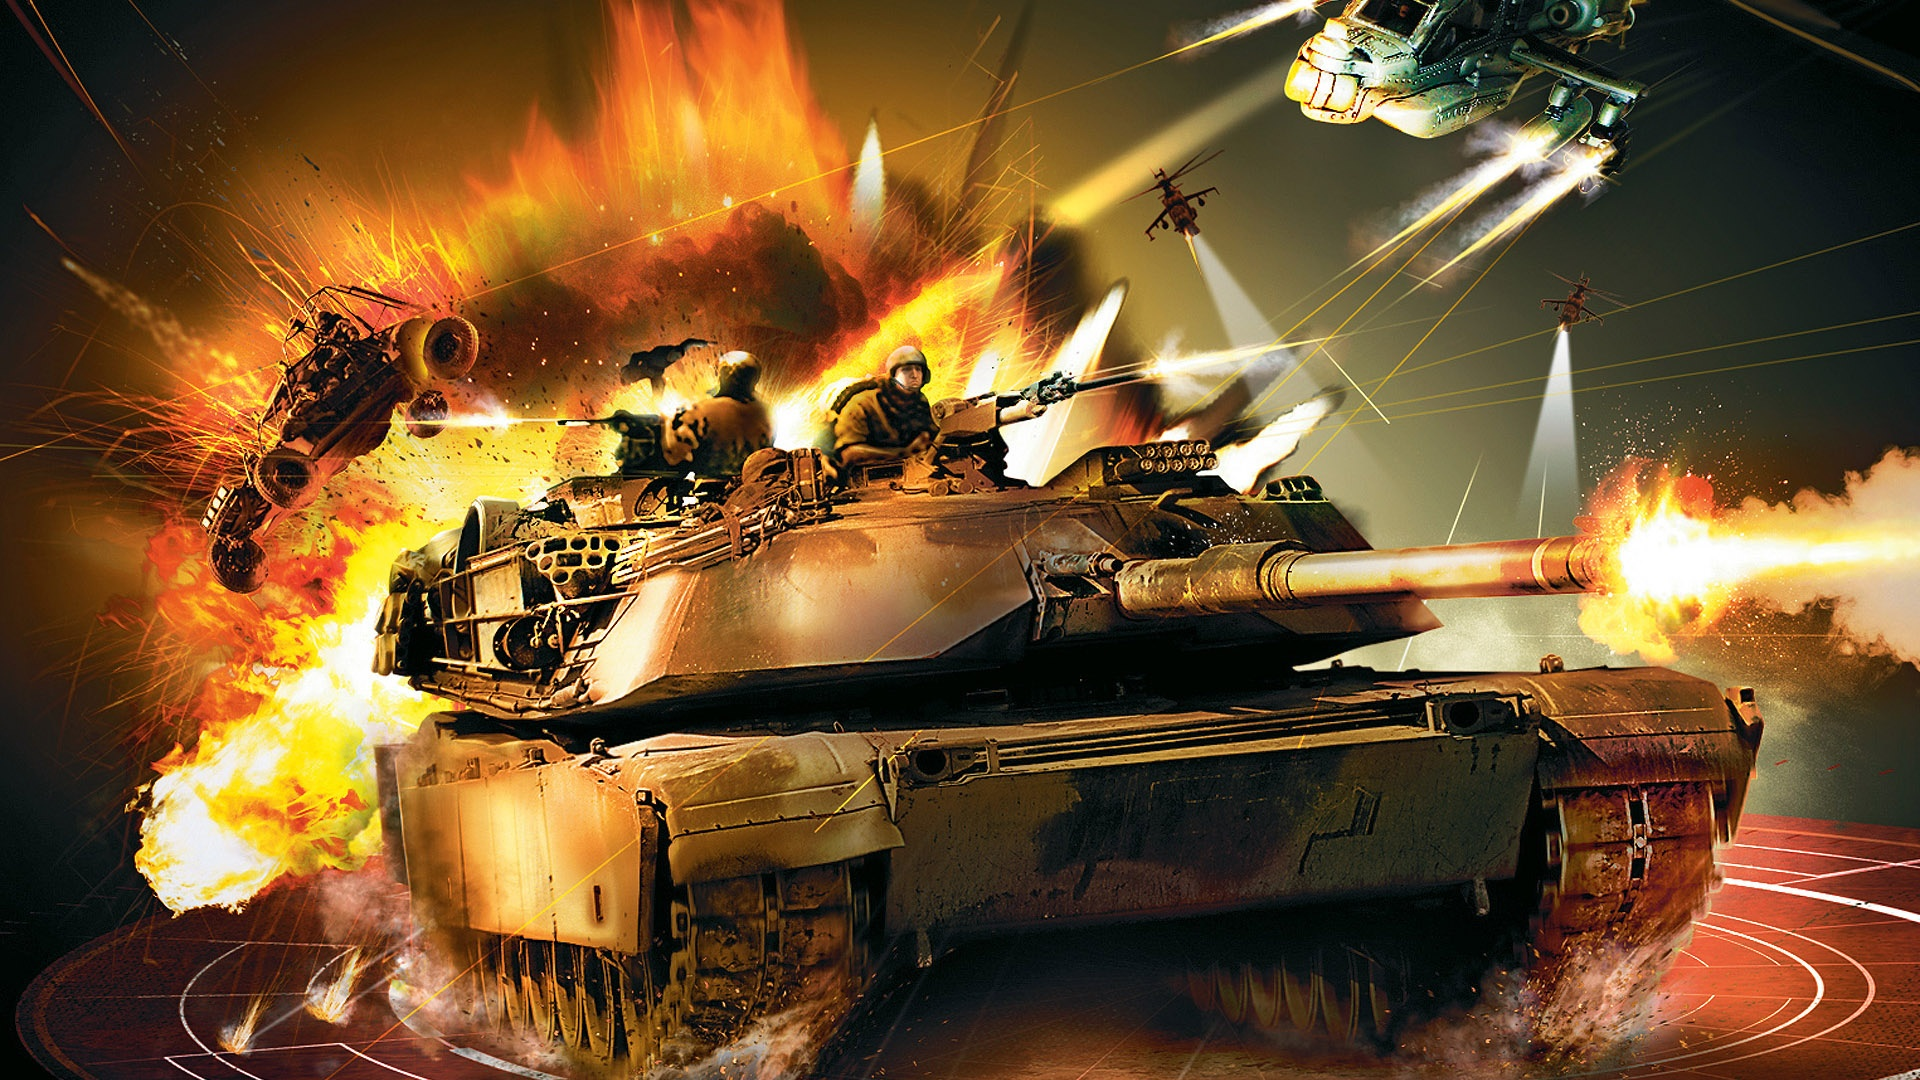 Army Tank Wallpapers In HD For Download 1920x1080